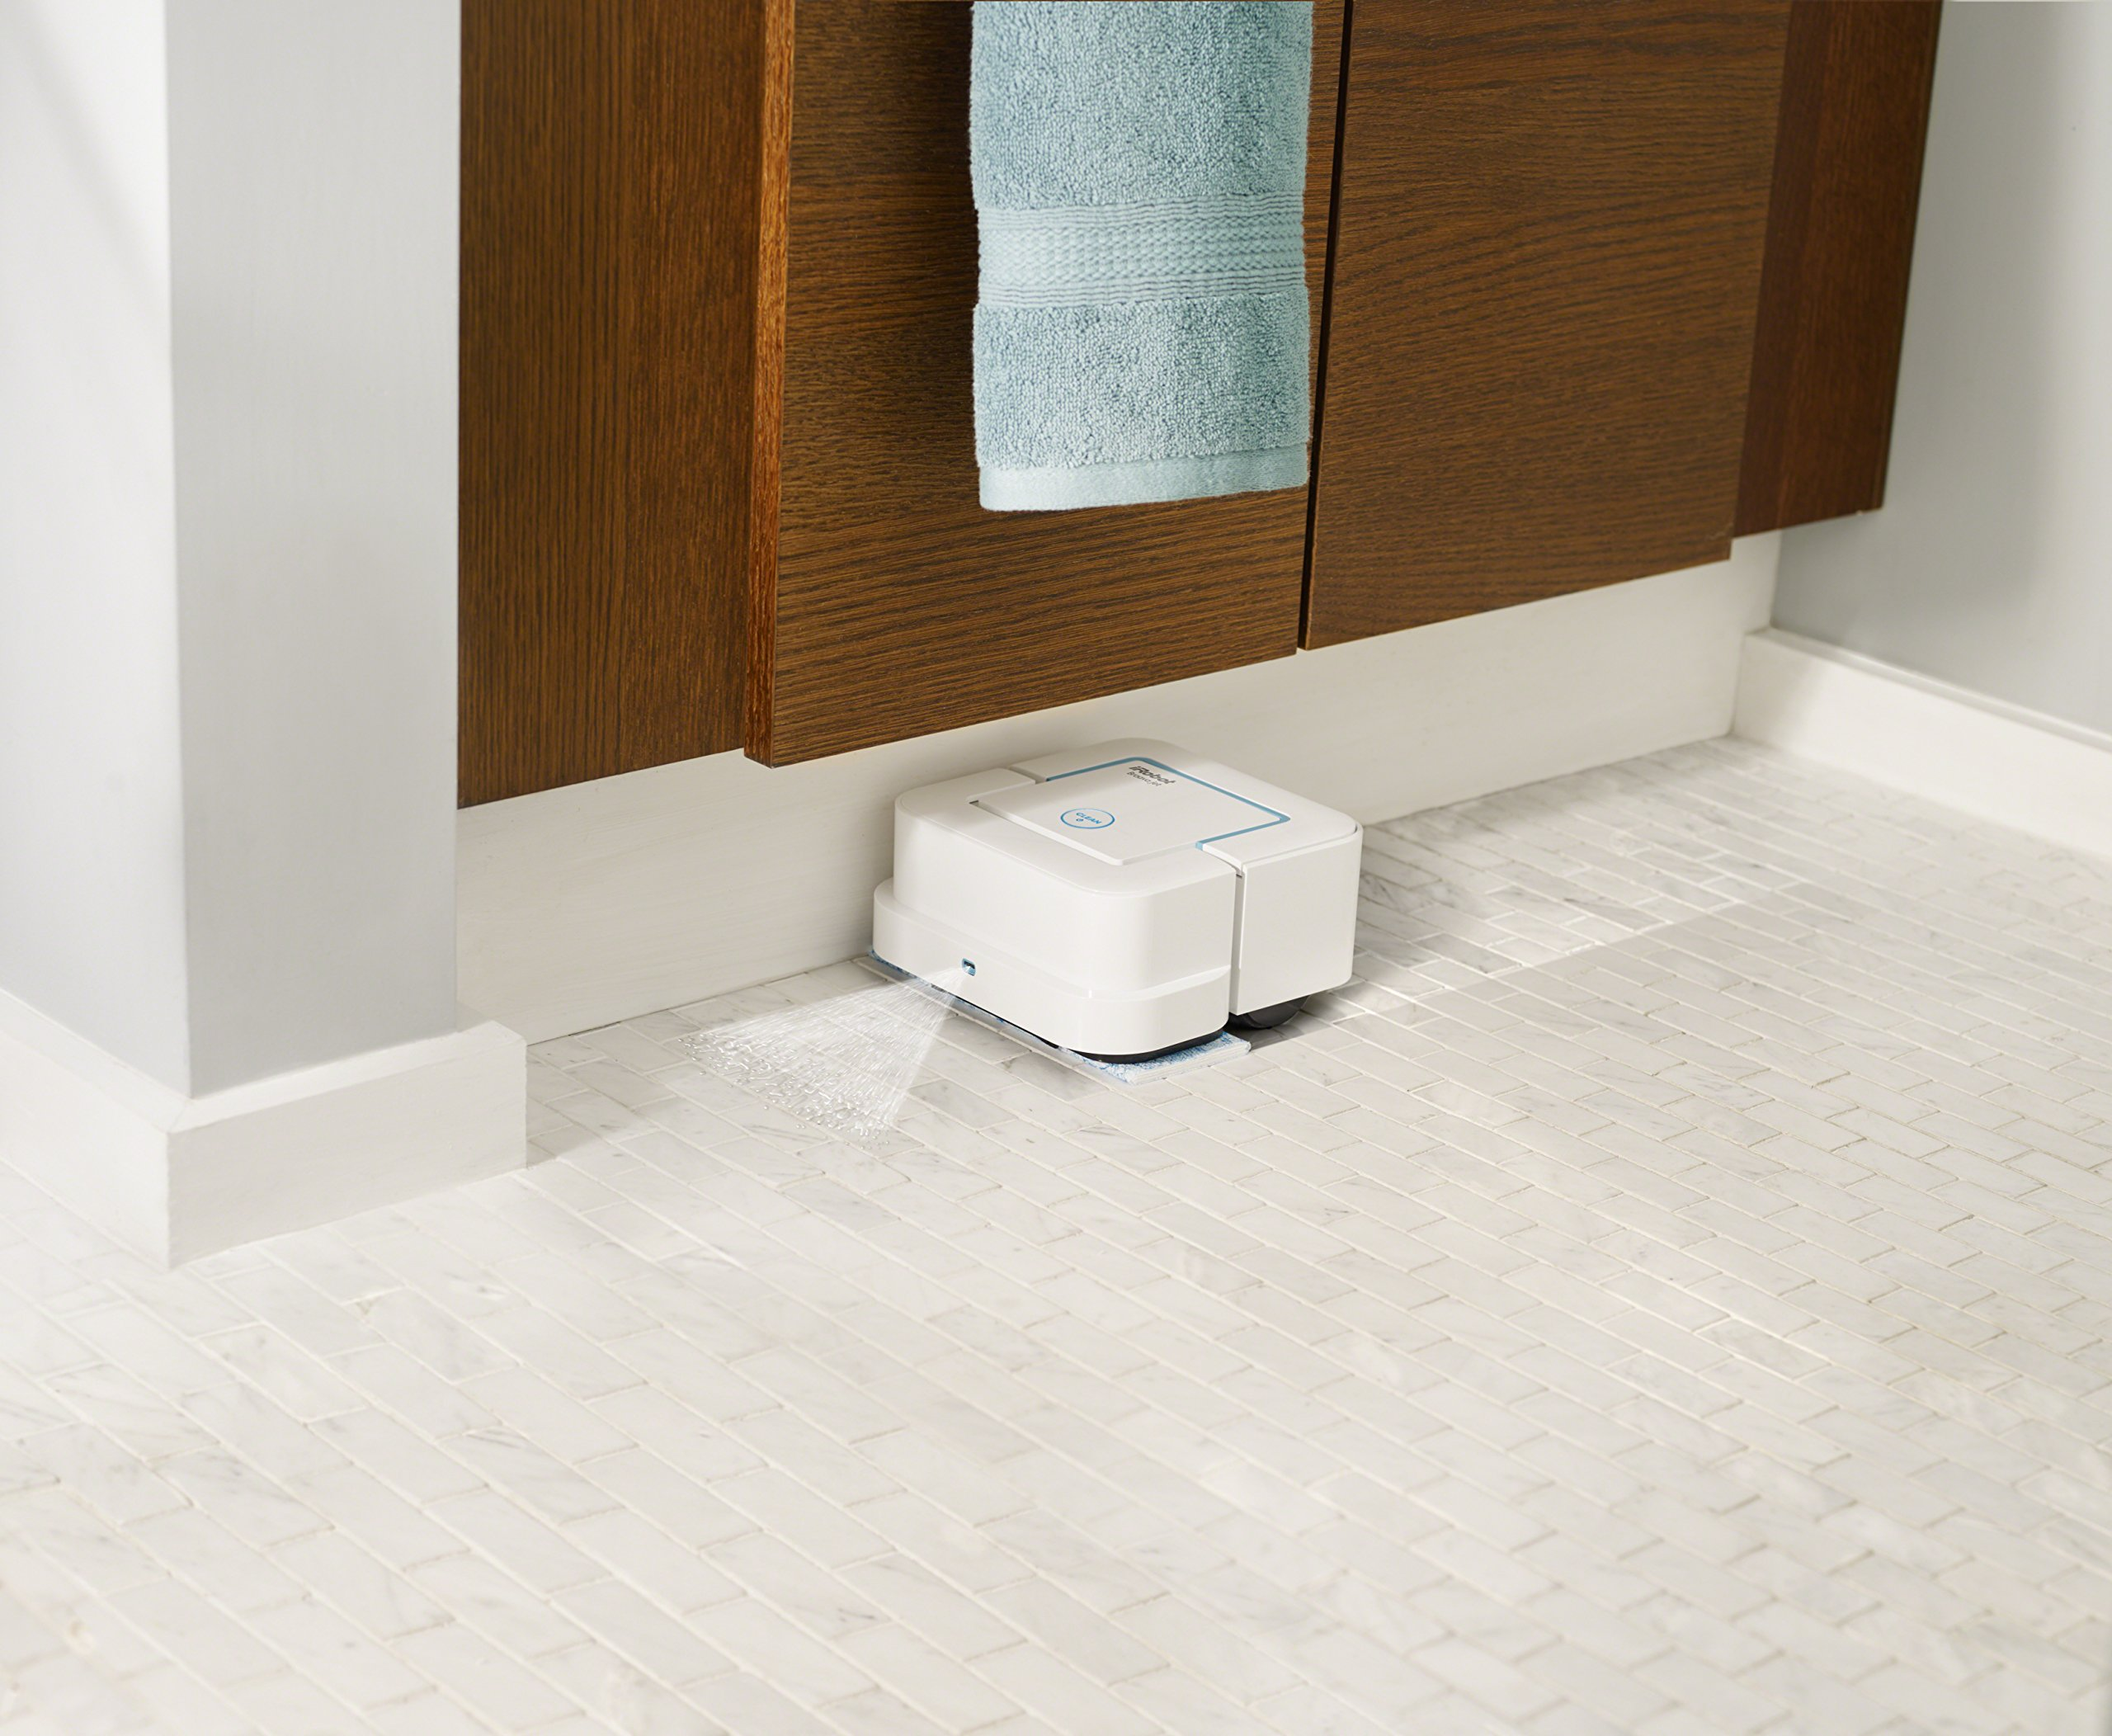 iRobot Braava jet  Robot Mop 5 Mops and sweeps hard floors including hardwood, tile, and stone in kitchens, bathrooms, and other small spaces Gets into hard-to-reach places, including under and around toilets, into corners, and below cabinets Precision Jet Spray and Vibrating Cleaning Head tackle dirt and stains such as dried coffee and soda